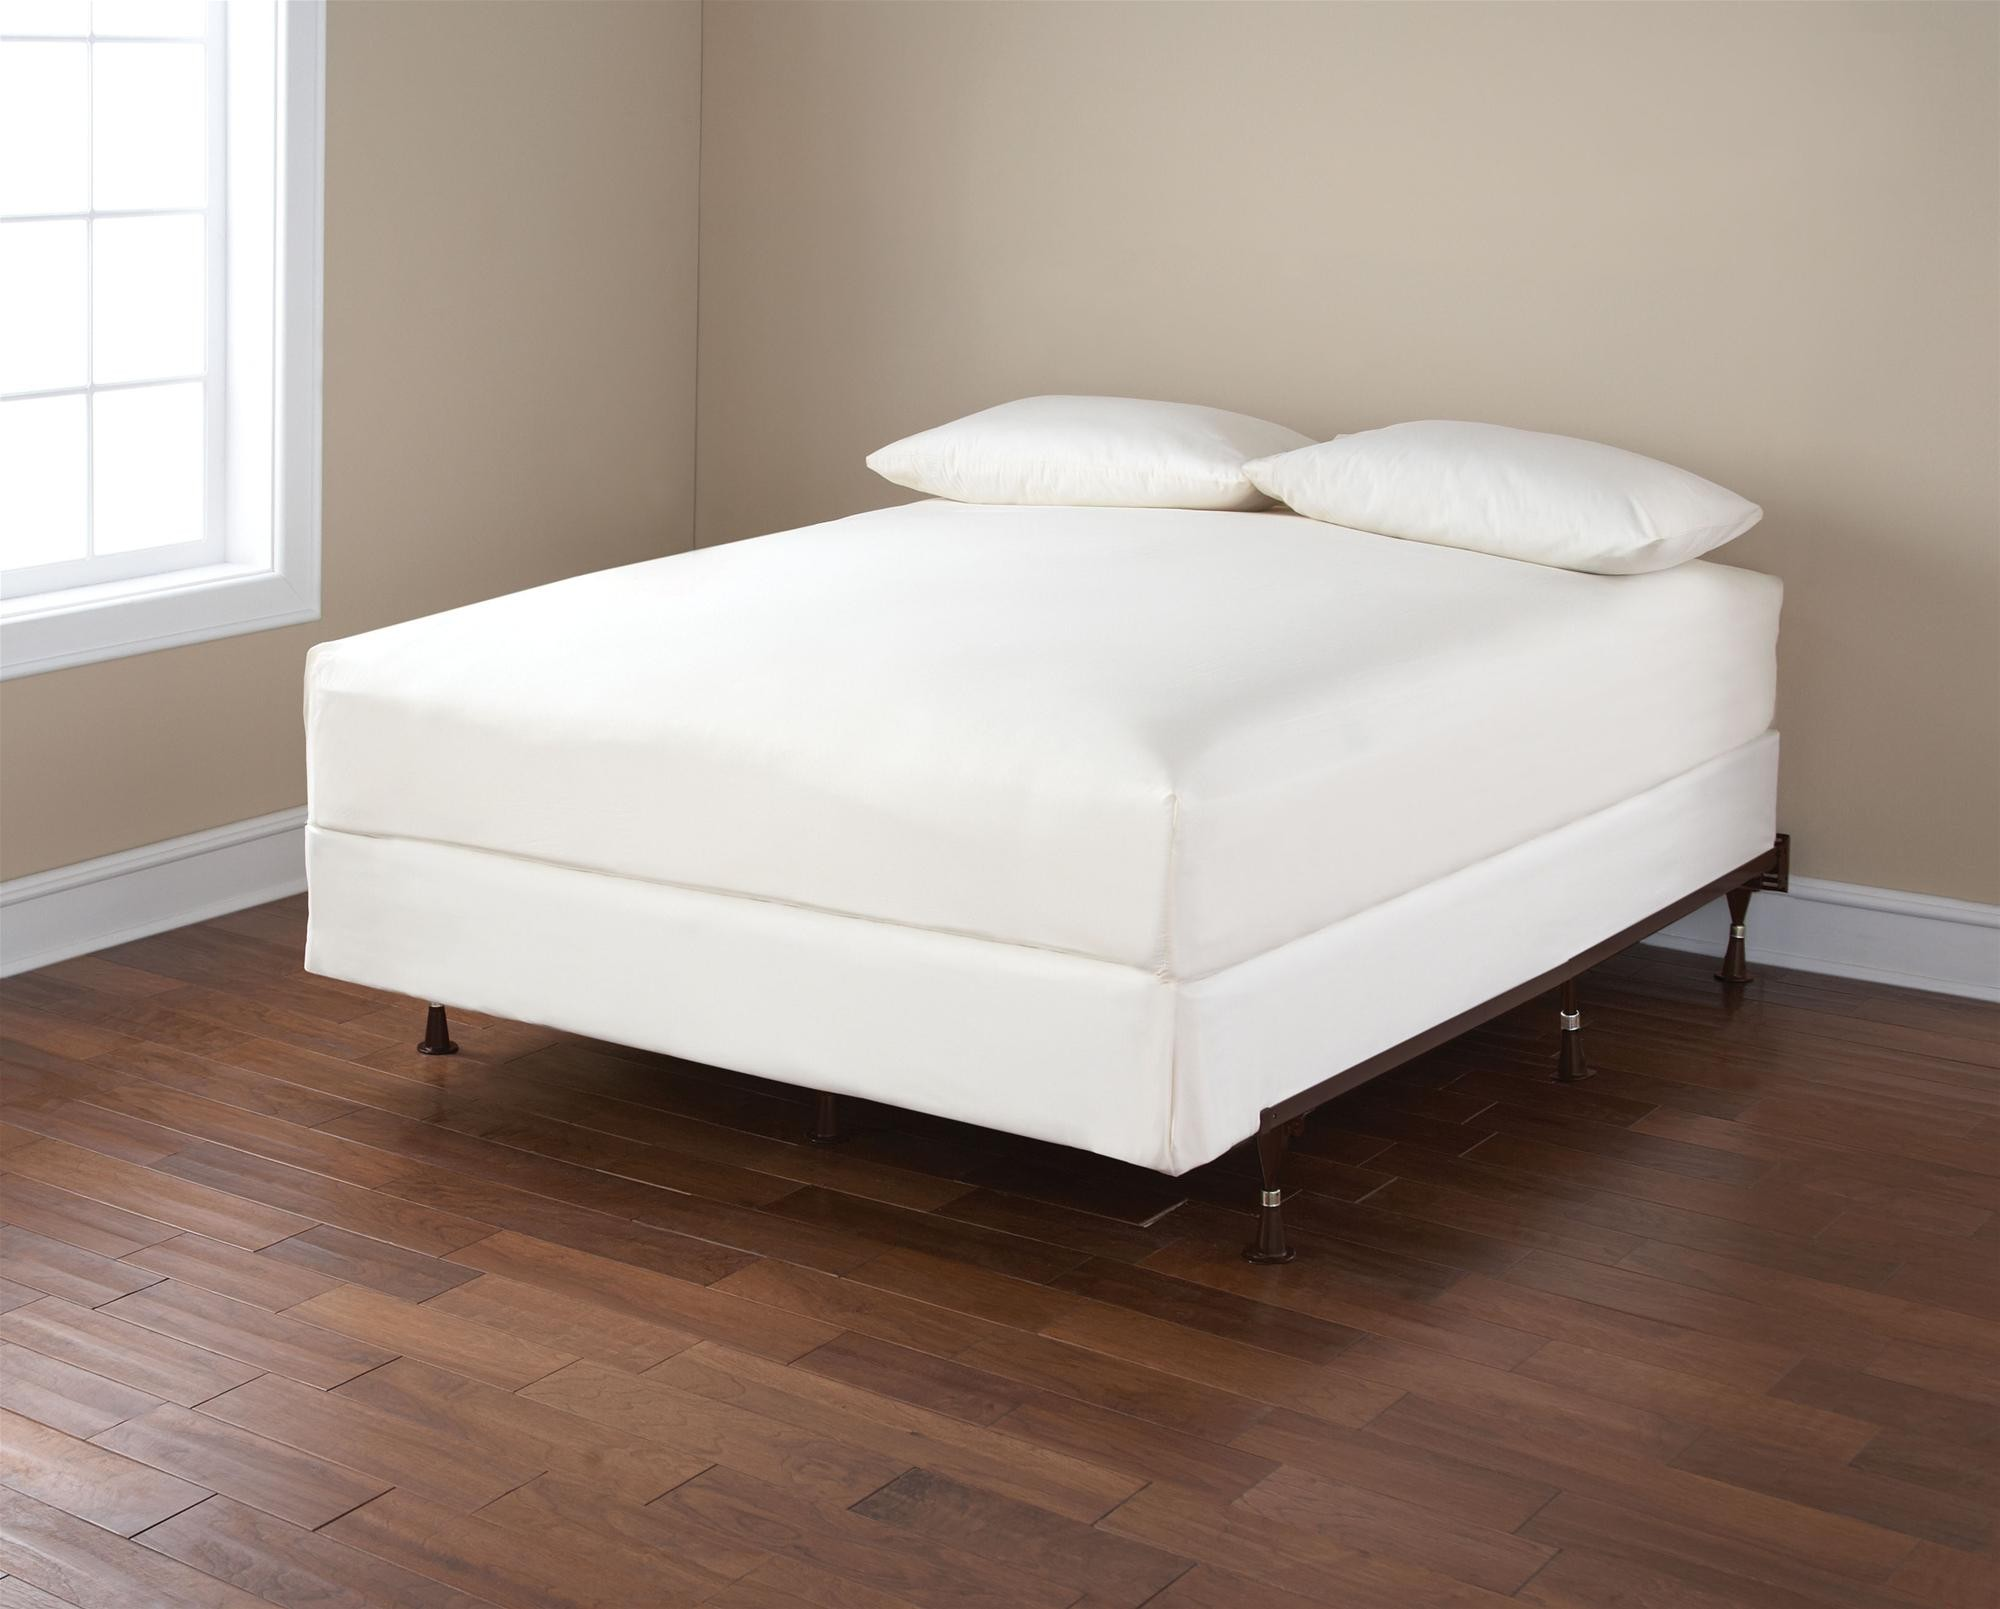 how to store a mattress box spring and bed frame